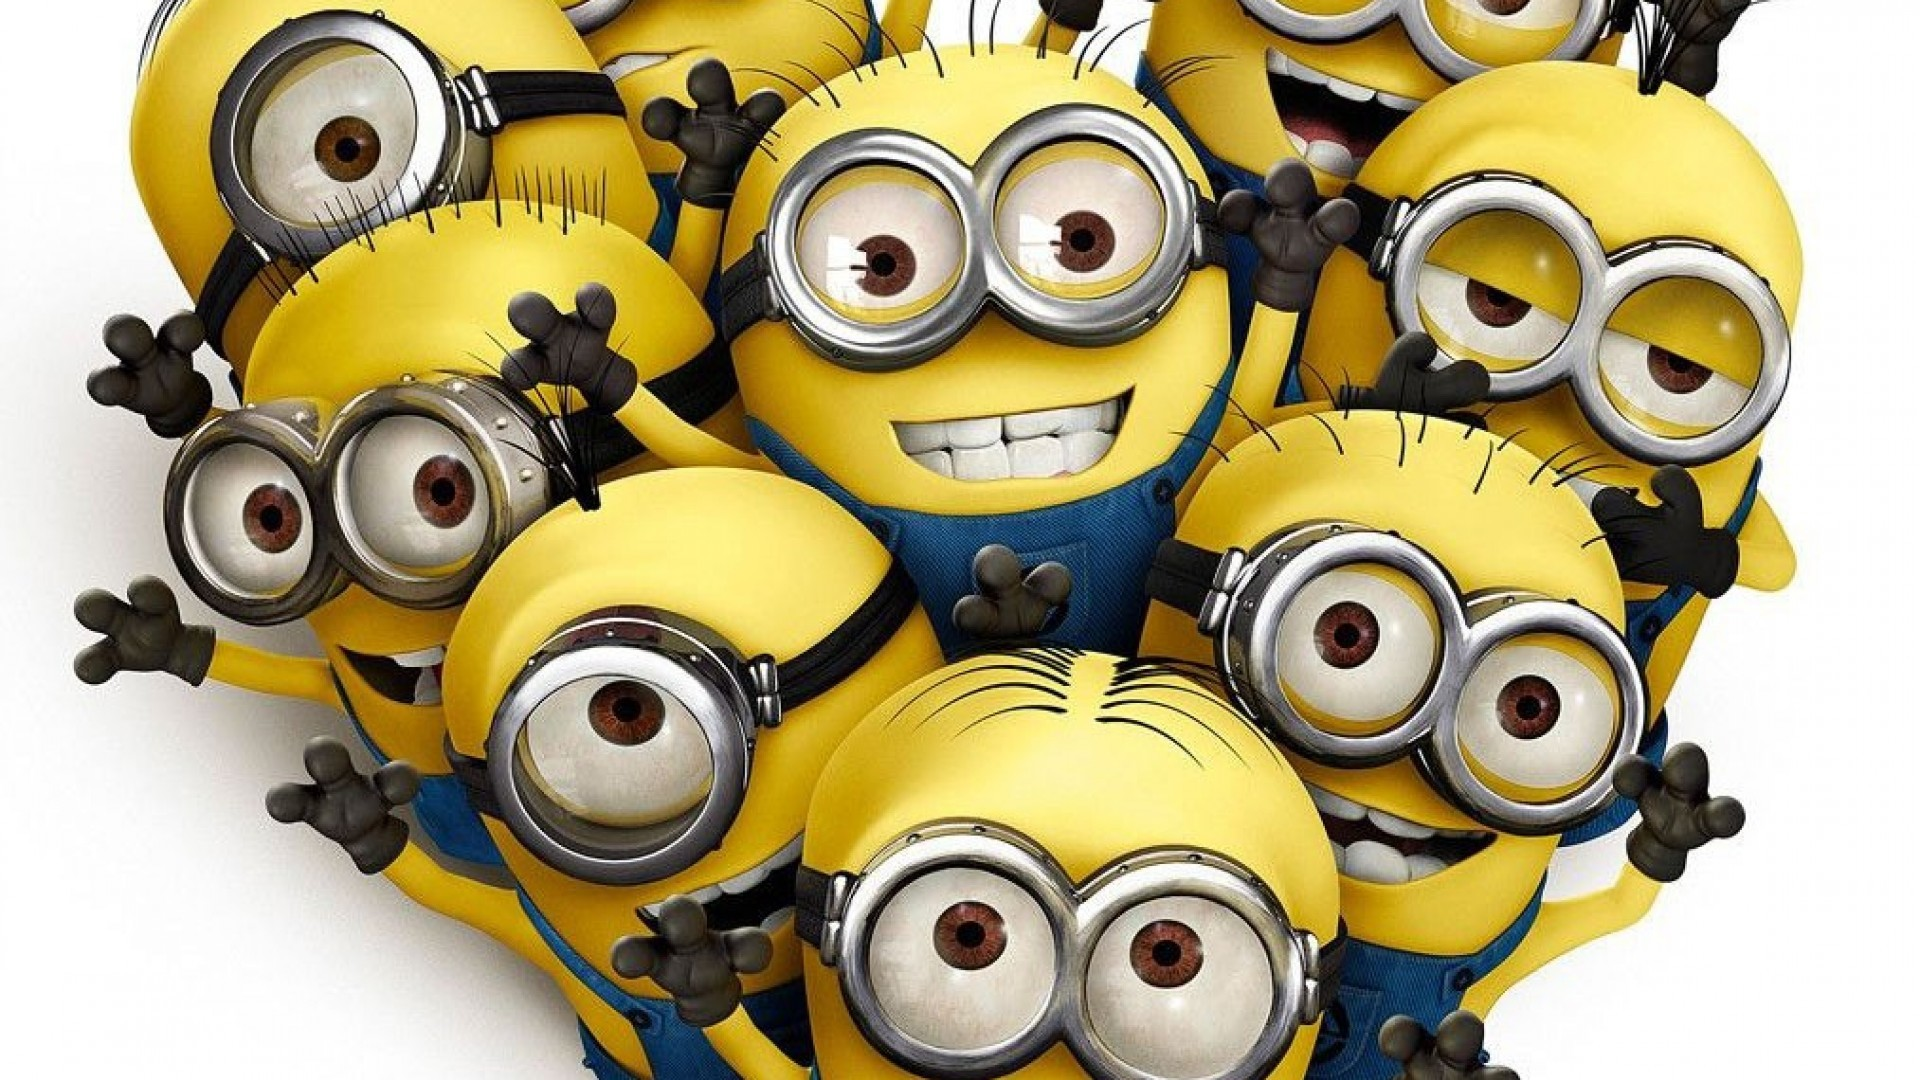 1920x1080 ... minions wallpapers ...